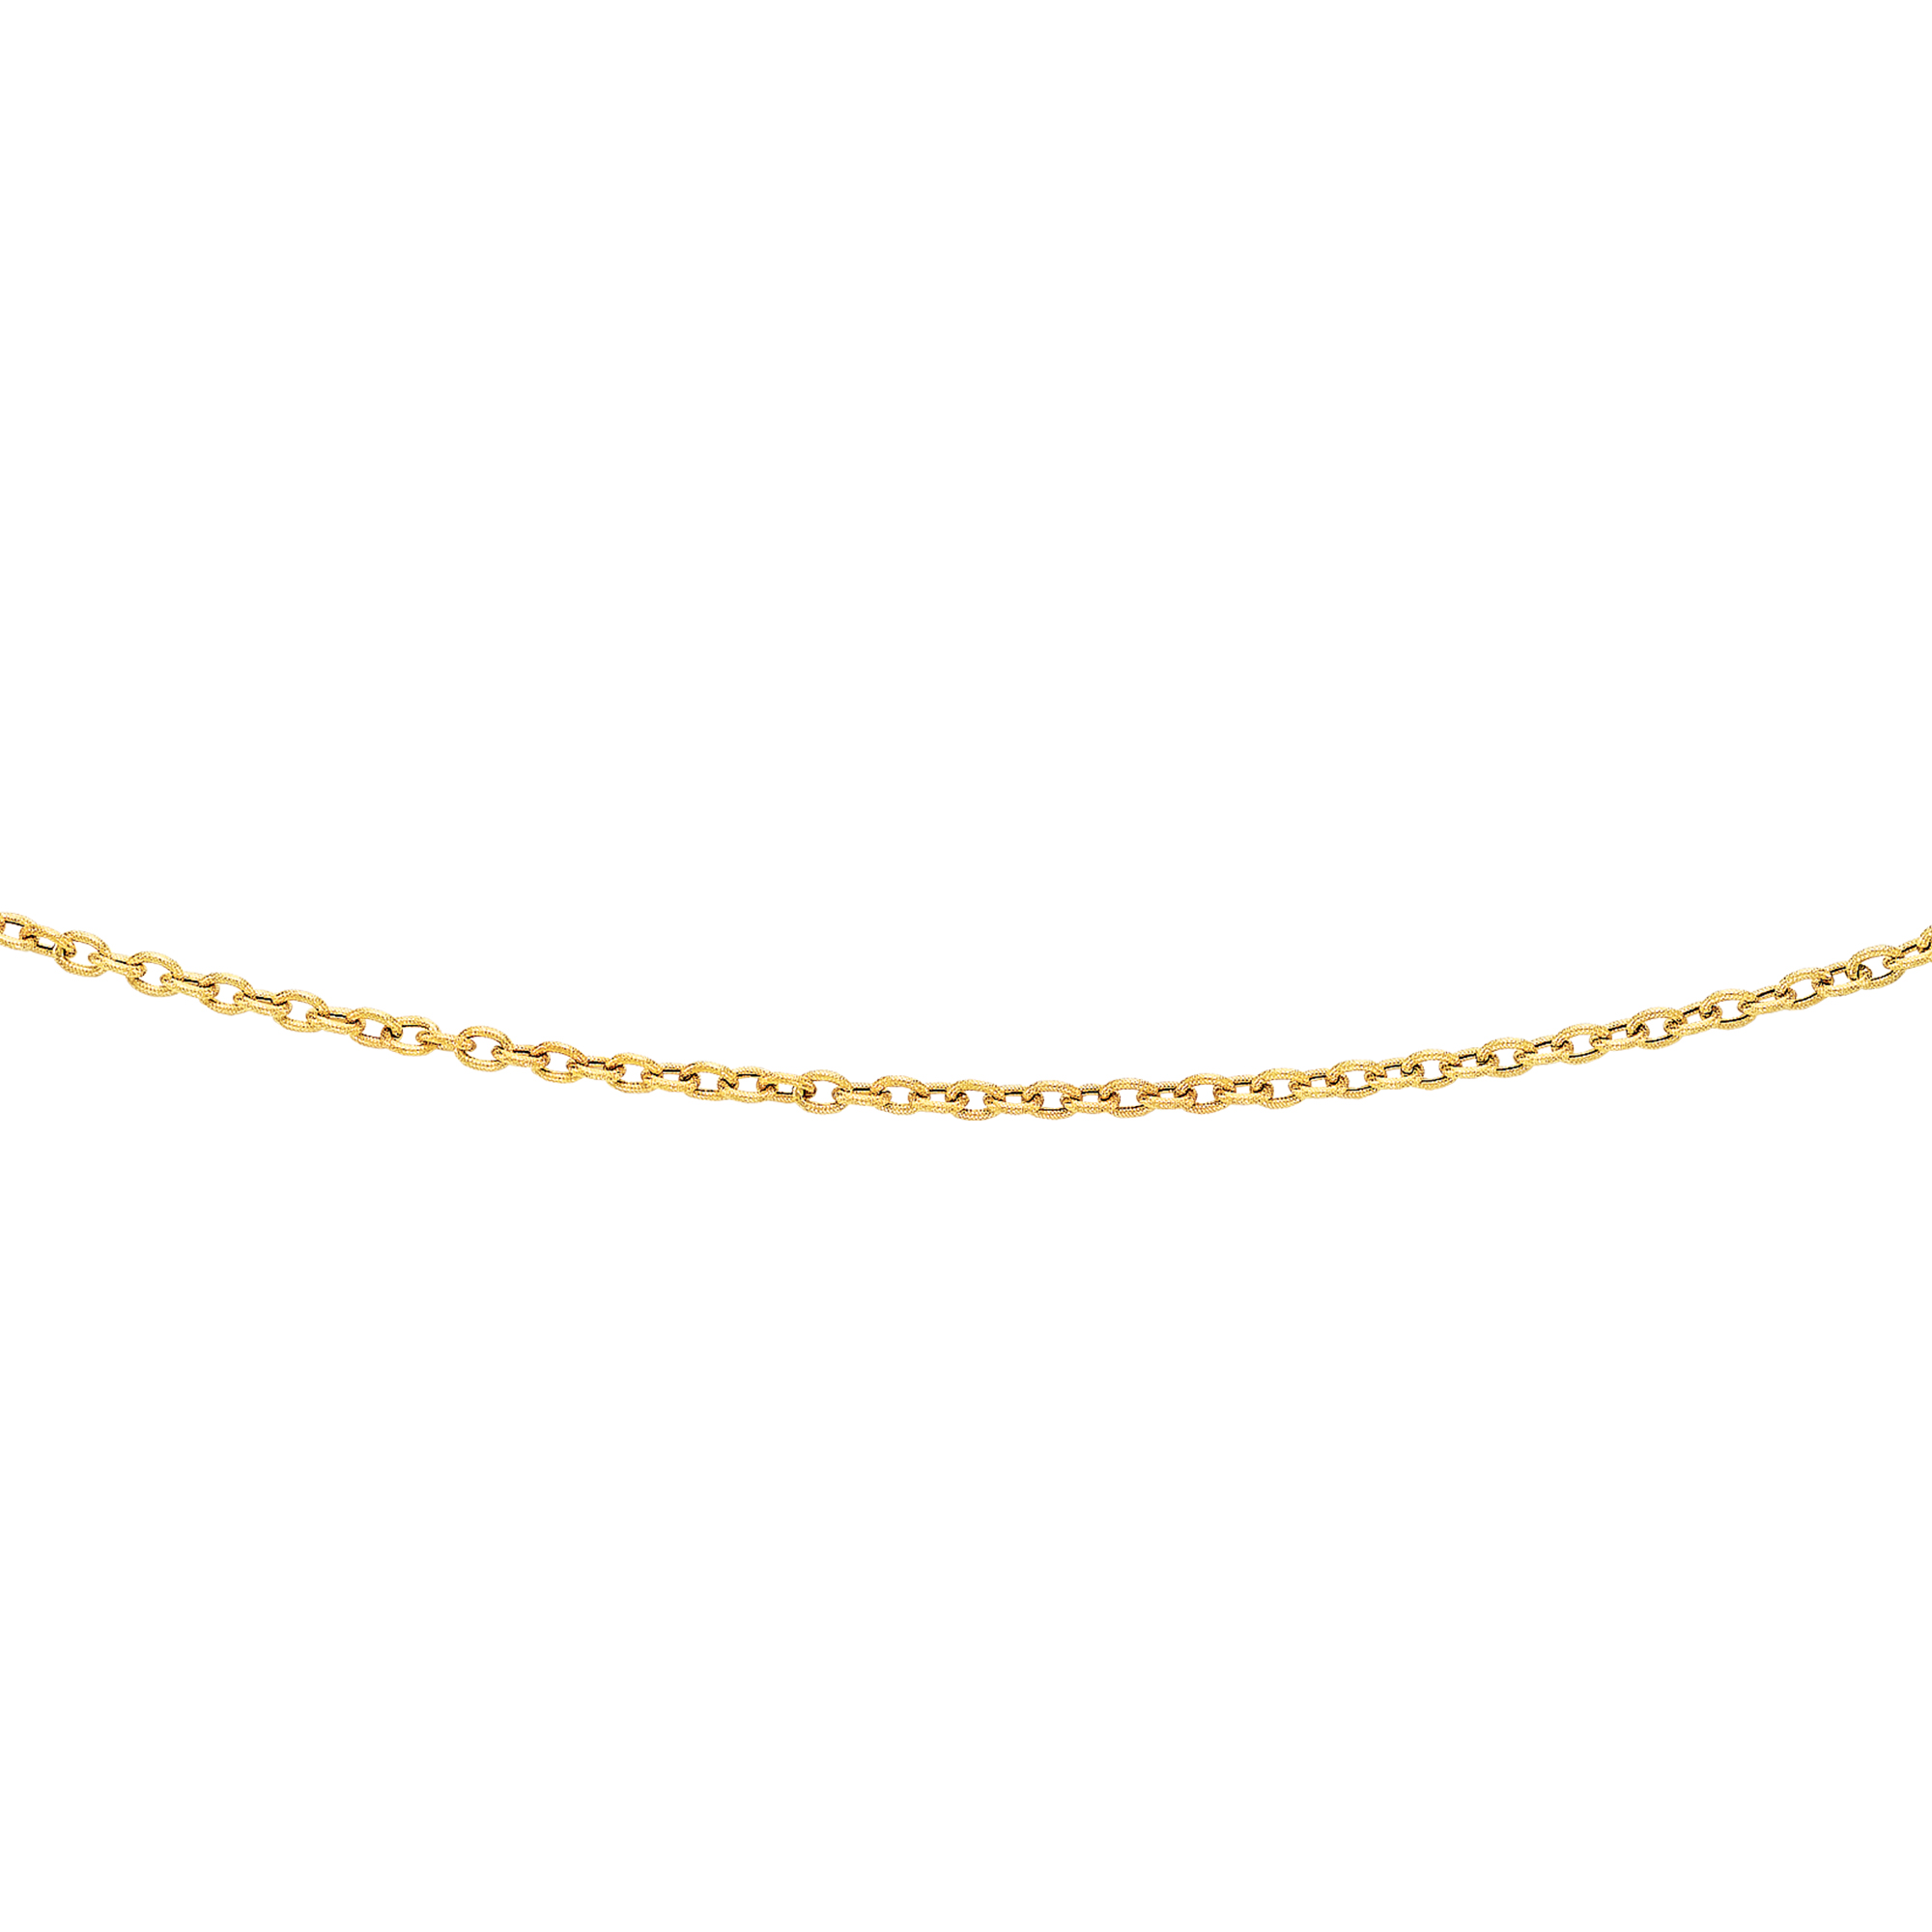 LUXURMAN Solid 14k Gold Cable Chain For Women Textured Link 3.5mm Wide